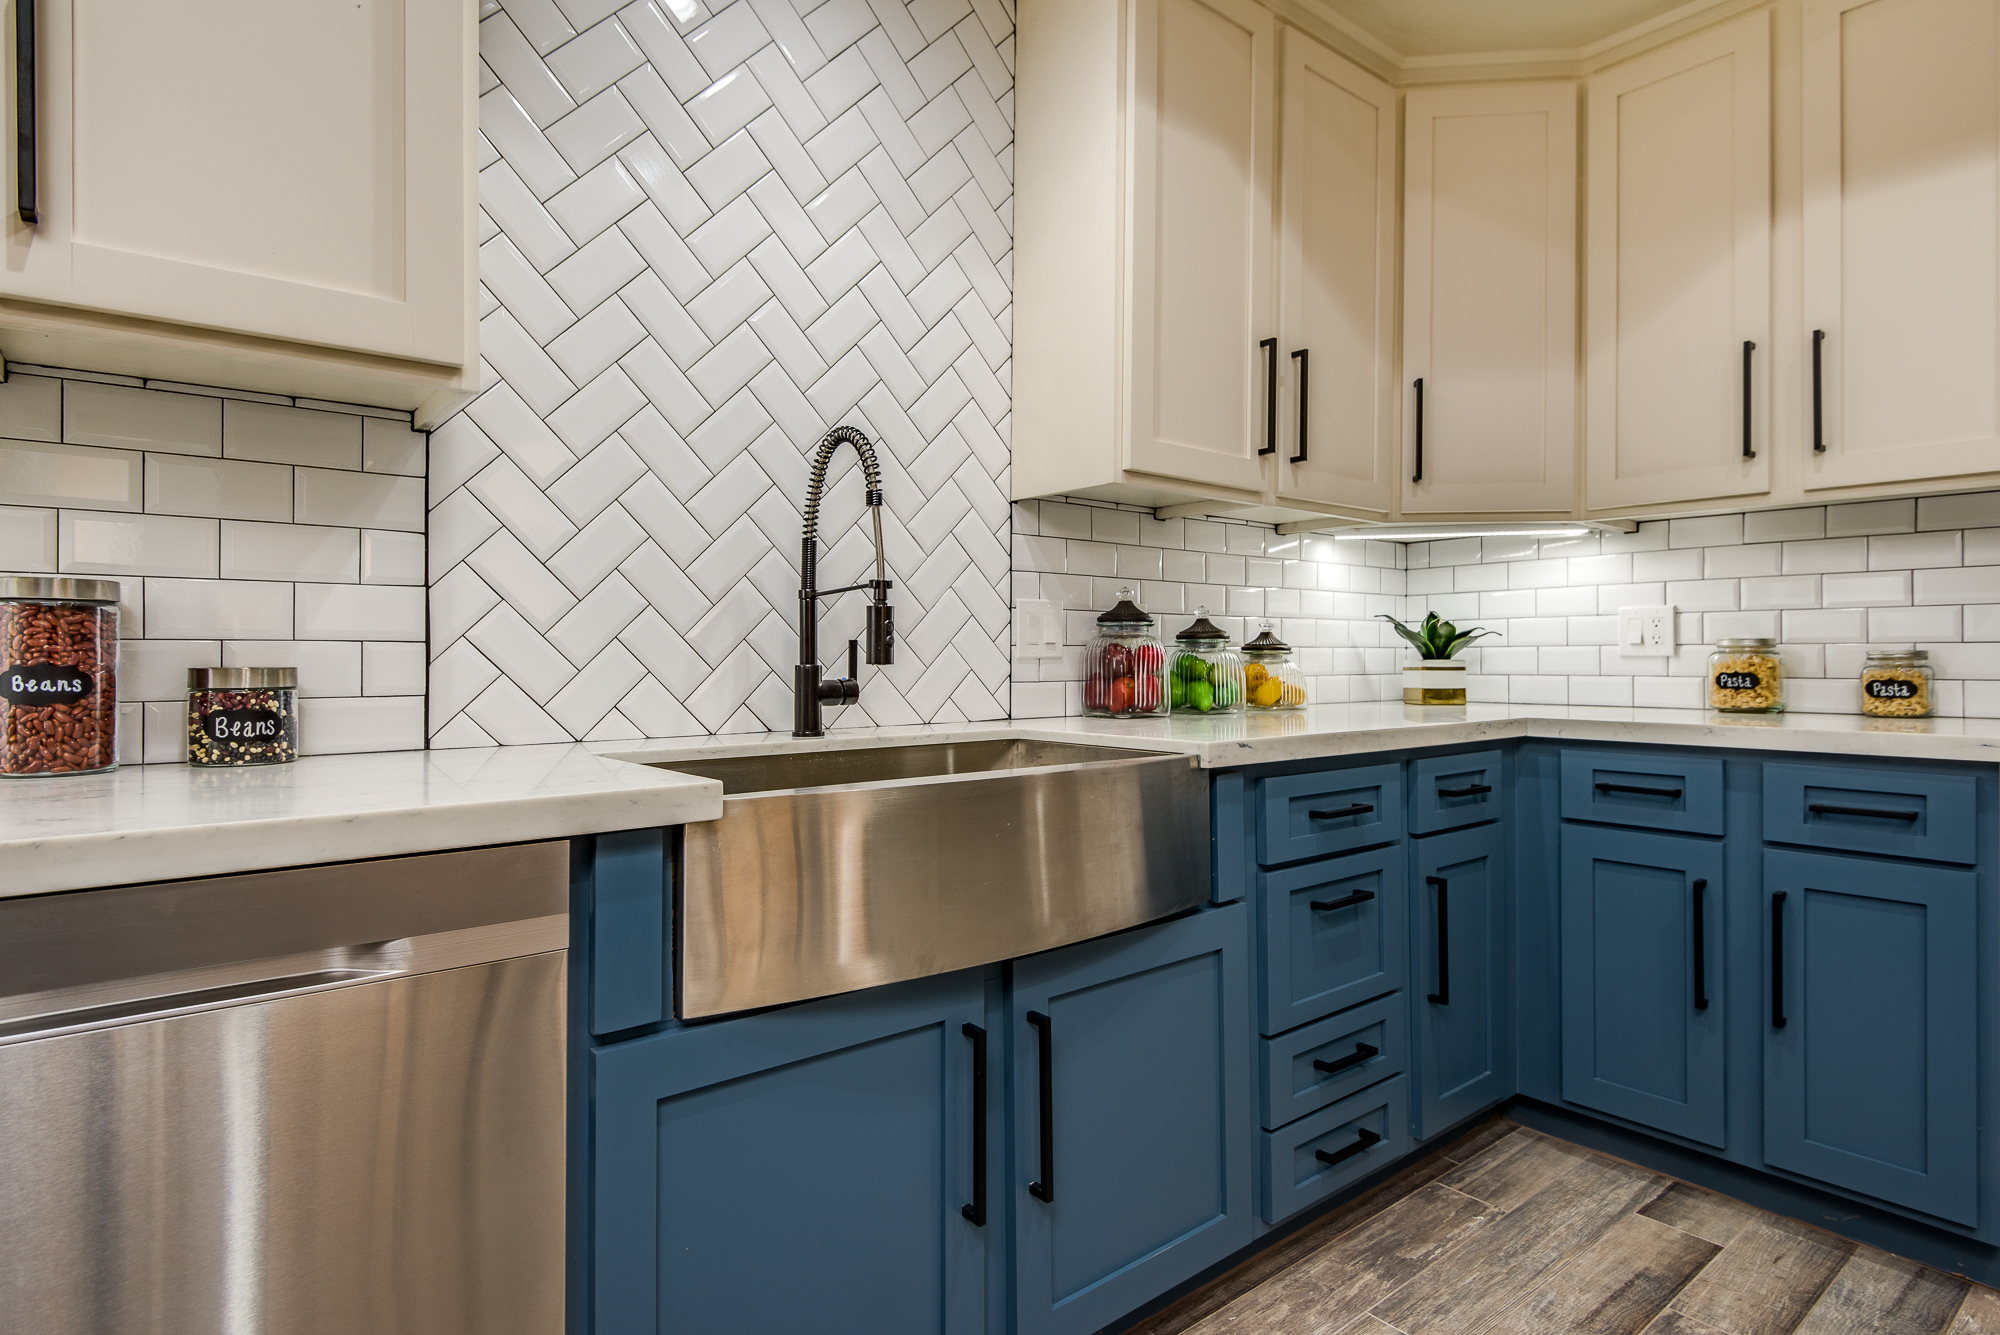 Blue Kitchen Cabinets and Subway Tile, White Kitchen No. 4 | Lugo & Co. in Phoenix, AZ